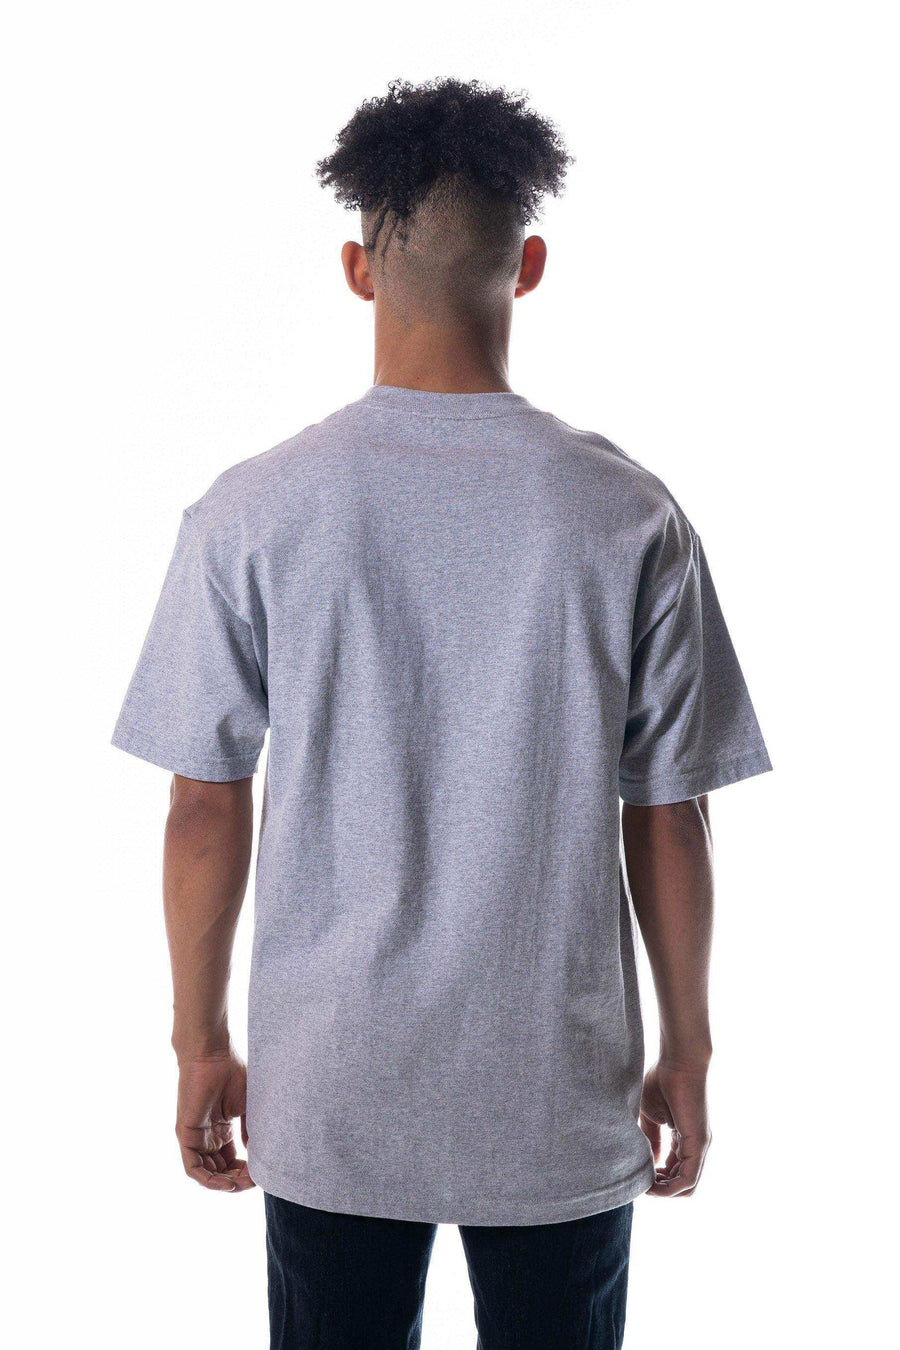 TS6000-HEATHER Colors | Men's Heavy Weight Open-End SS Tee